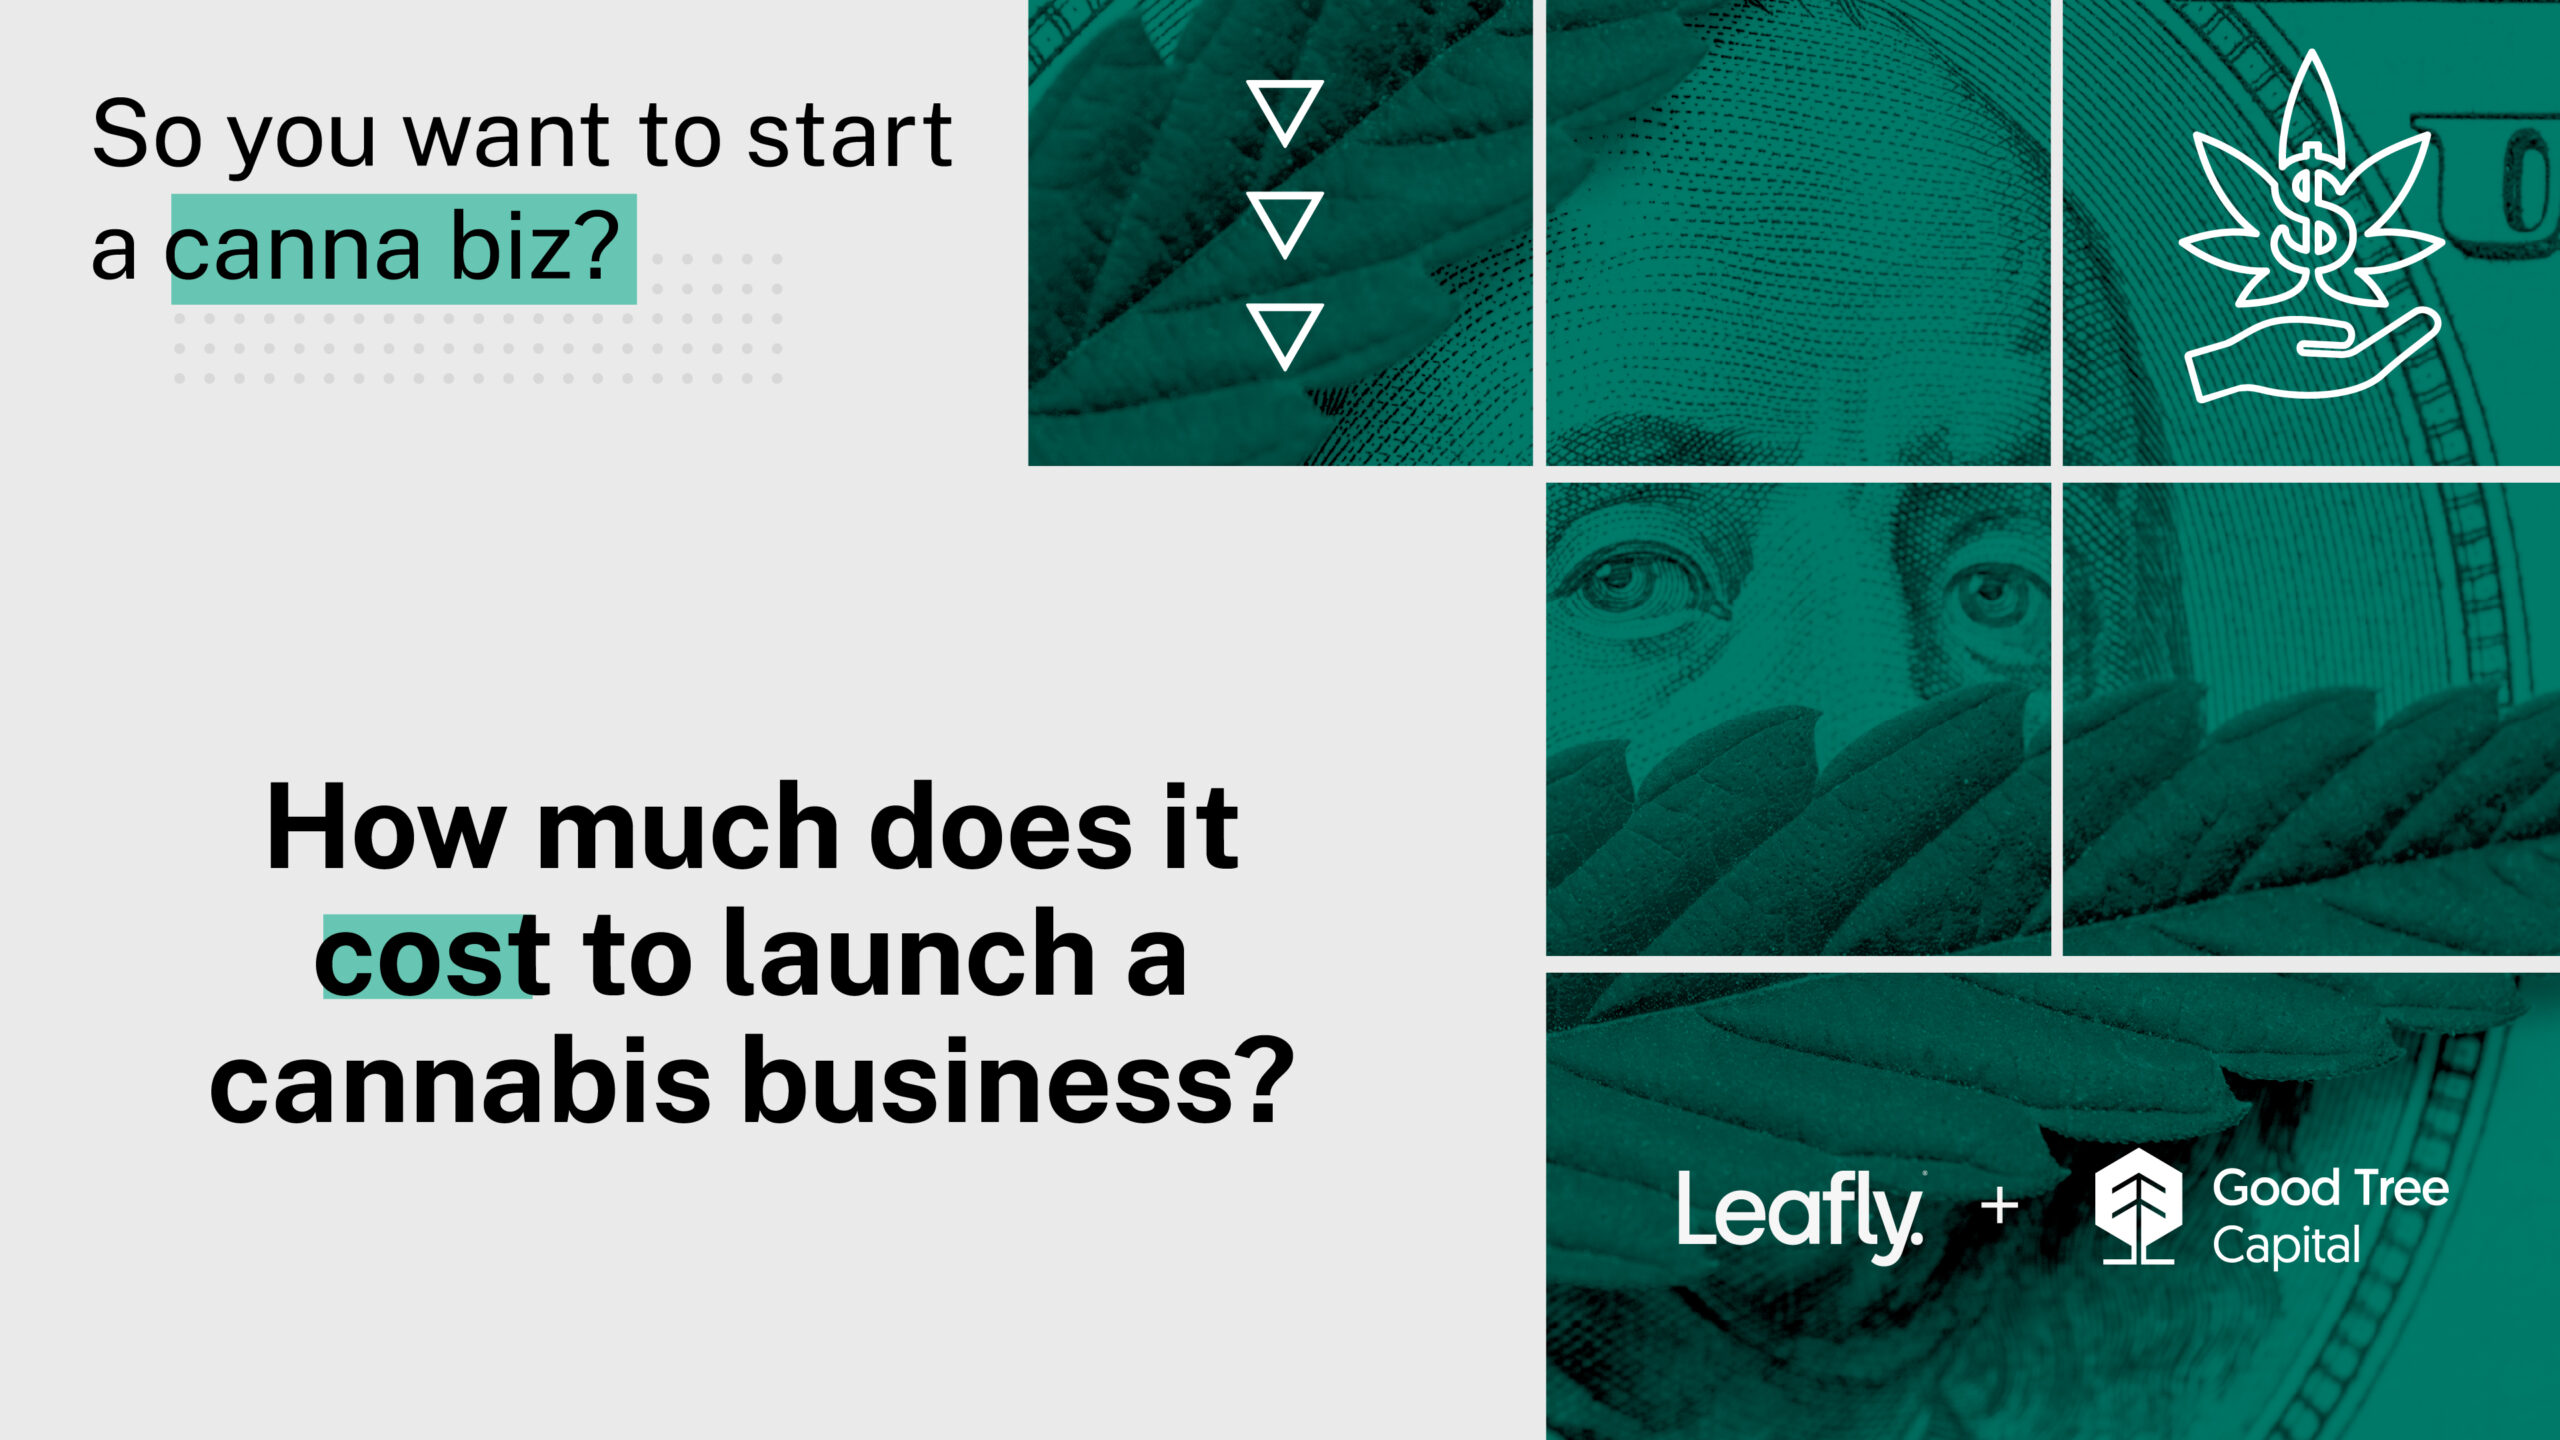 How much does it cost to launch a cannabis business?